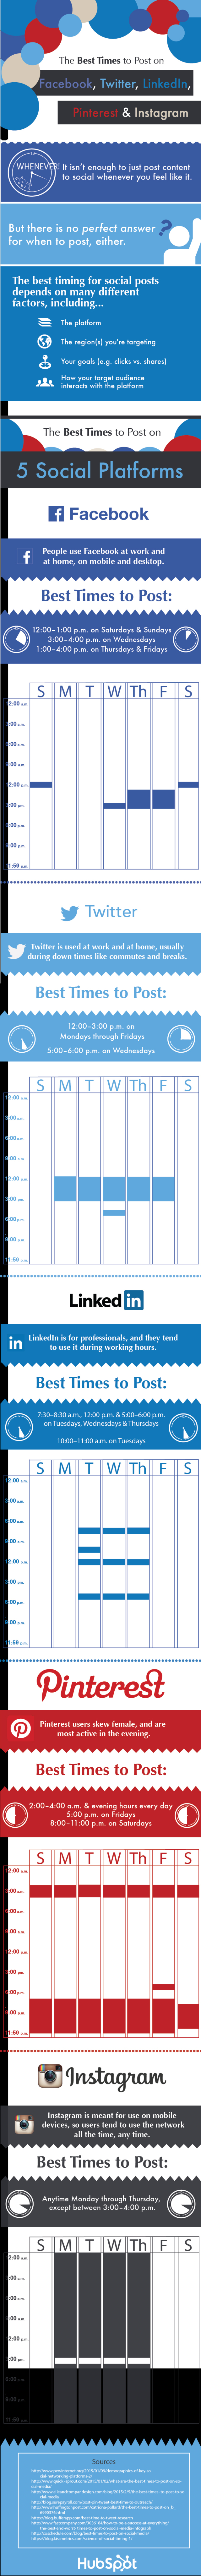 The Best Times to Post on Facebook, Twitter, LinkedIn, Pinterest & Instagram